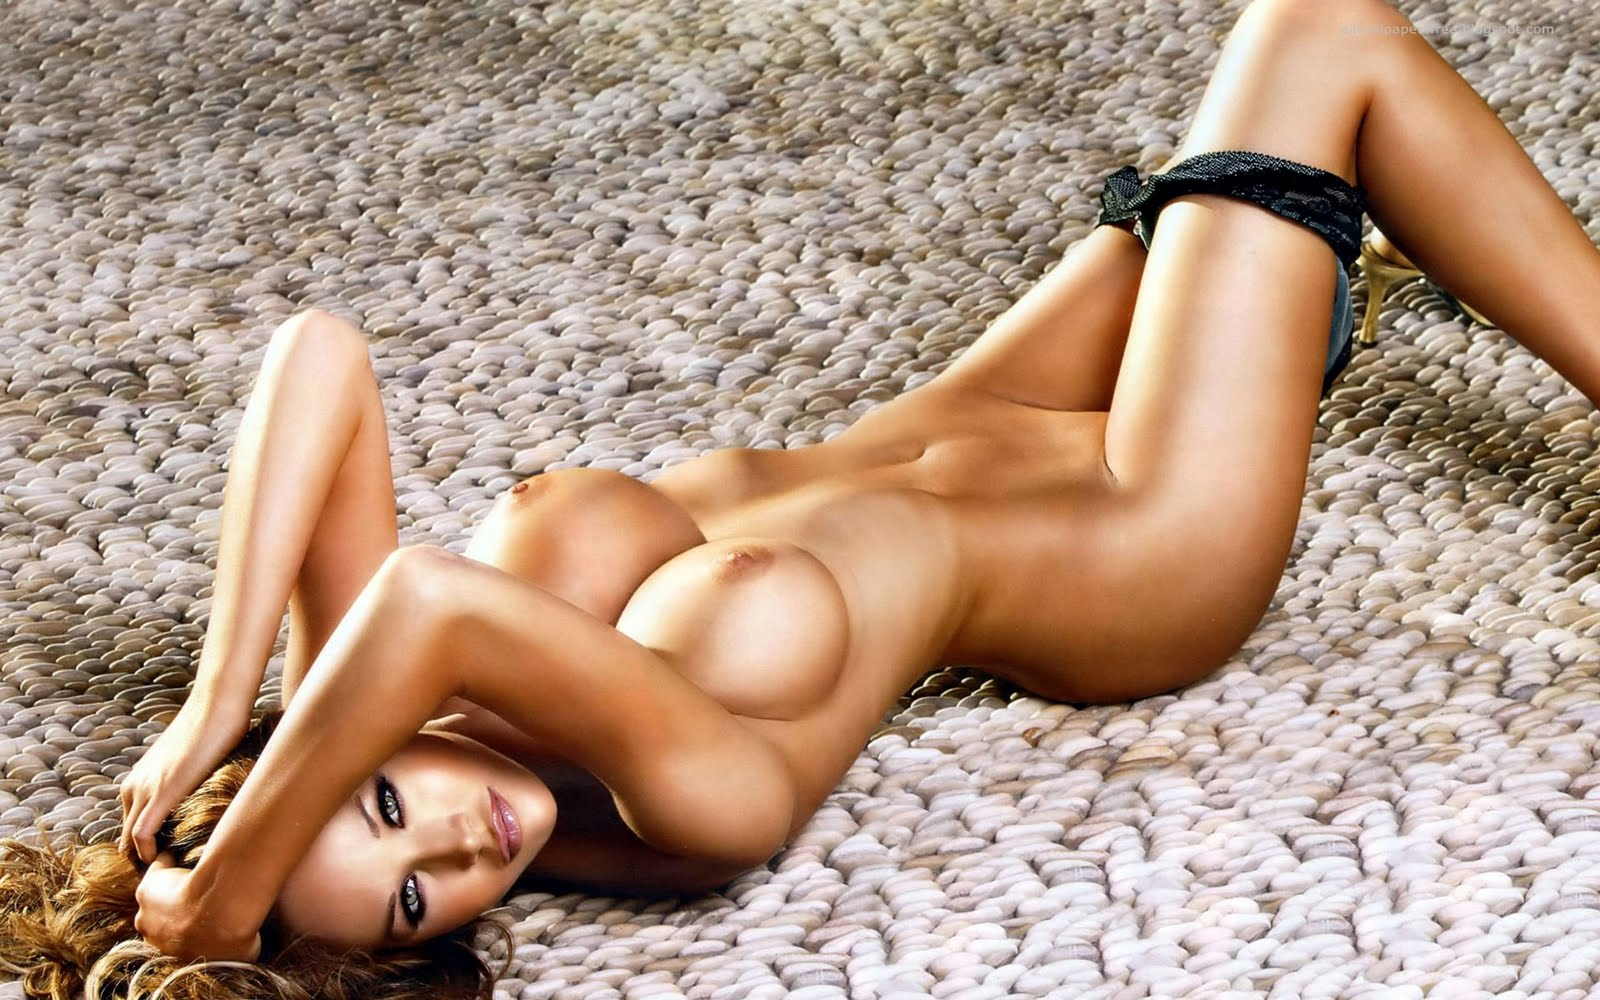 Hd Hot Naked Babes Pitctures